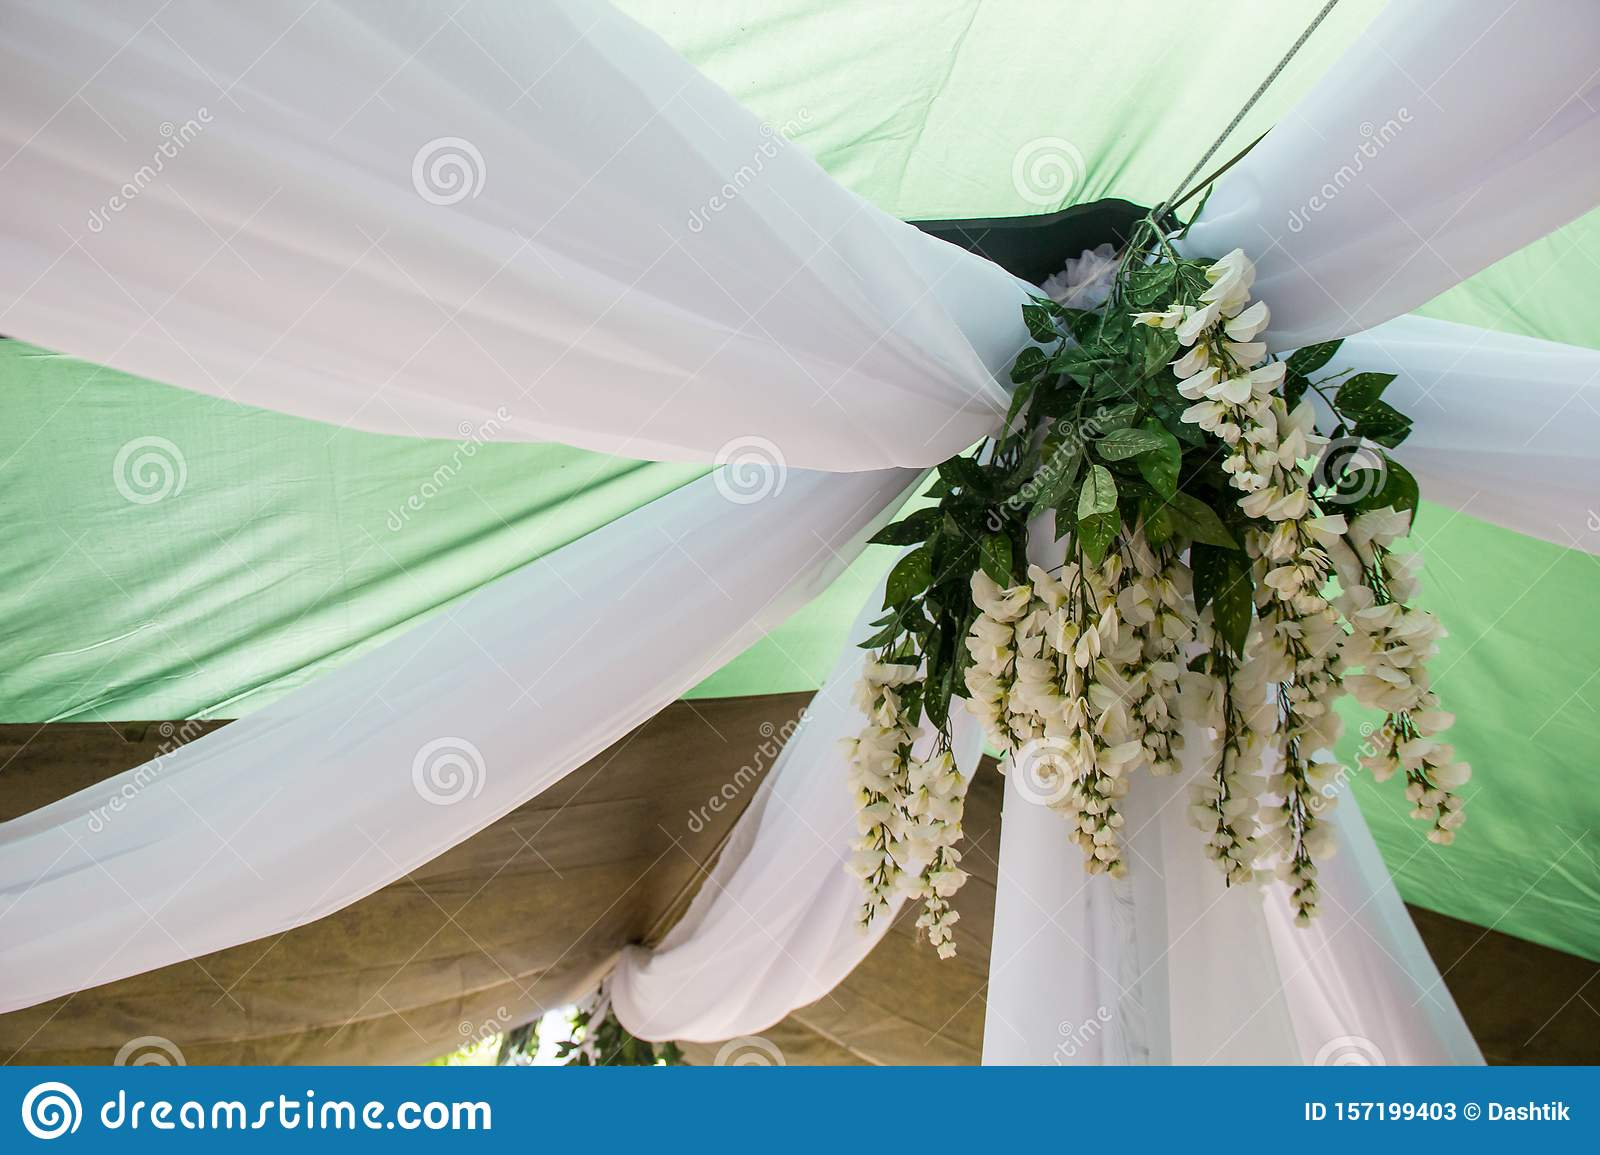 Getting Ready For The Wedding Ceremony Decor Of White Wisteria